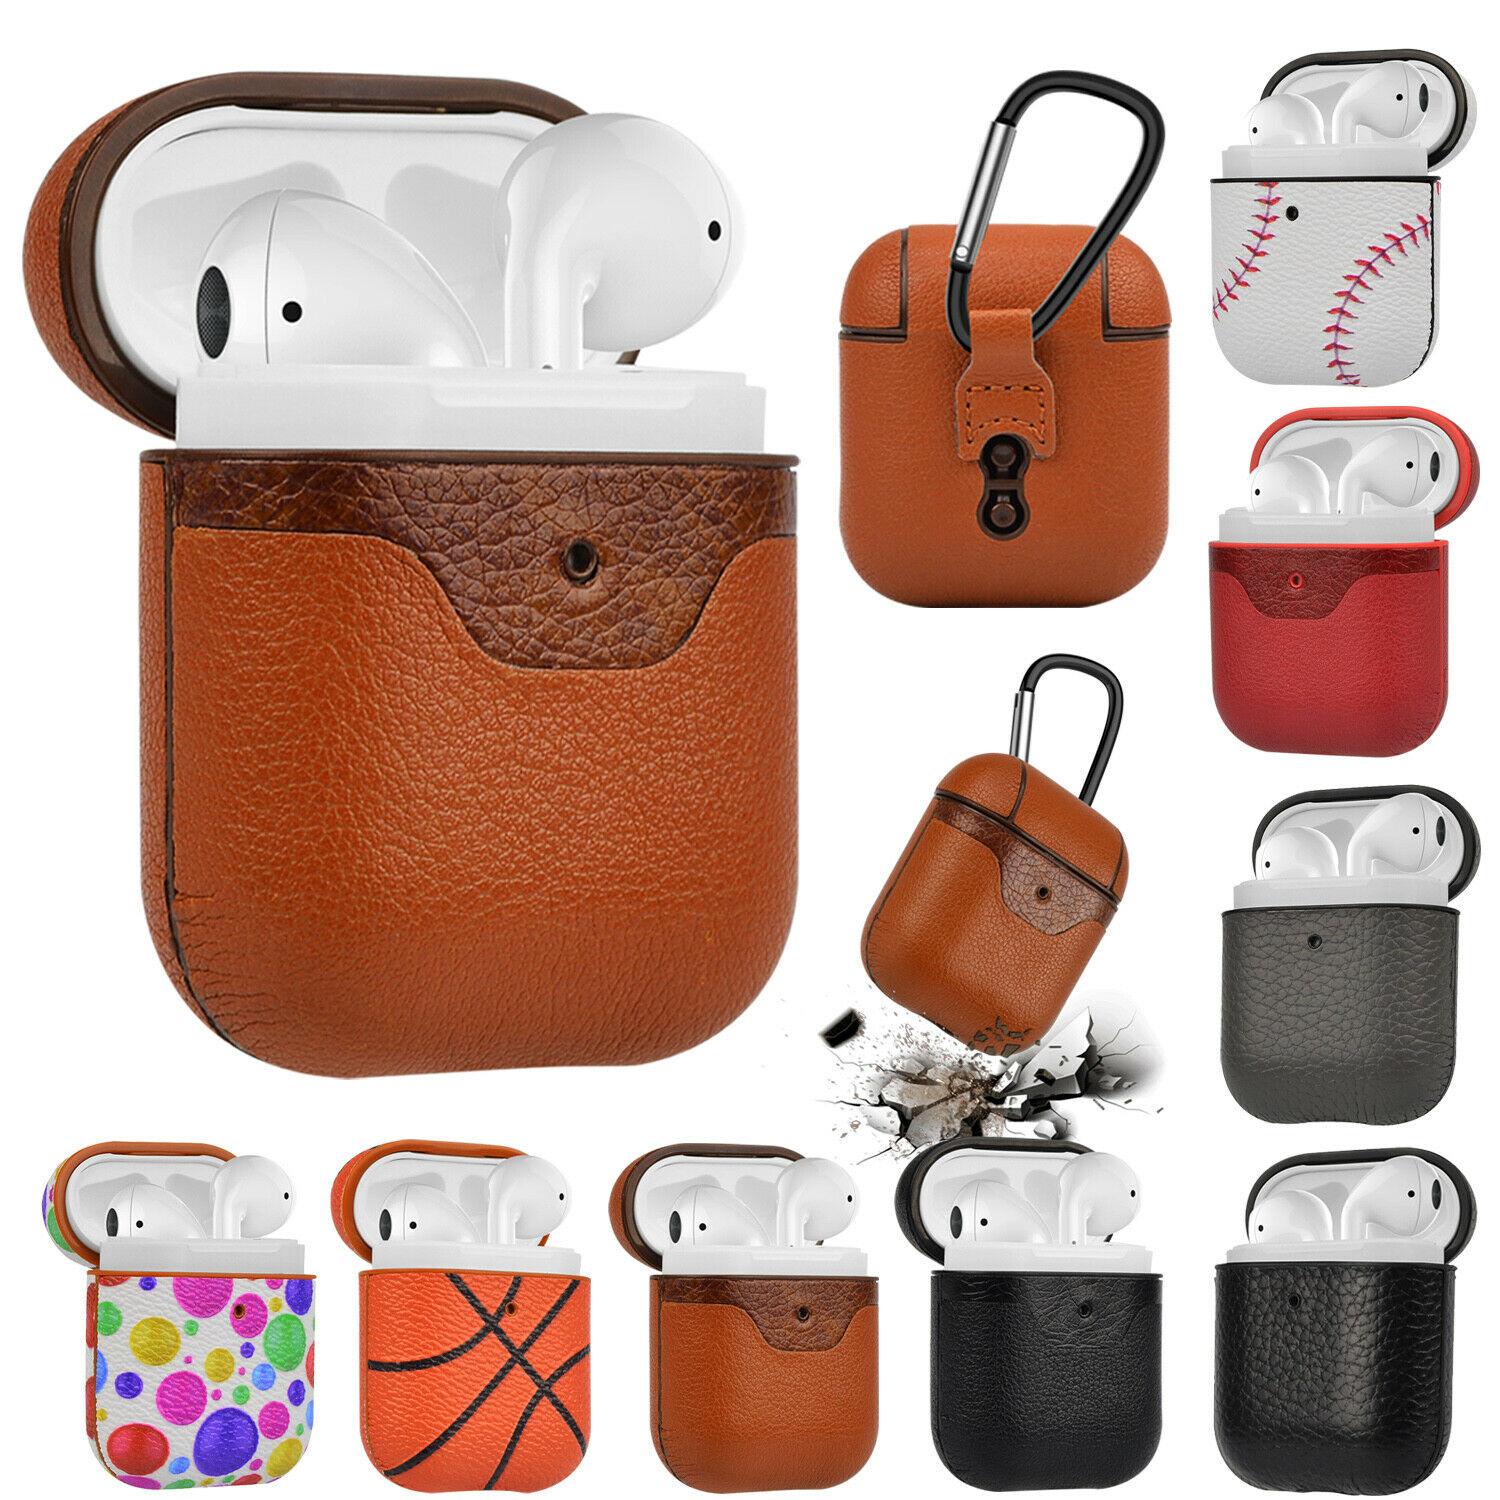 Airpod Leather Case Cover protective Cover for Apple AirPods